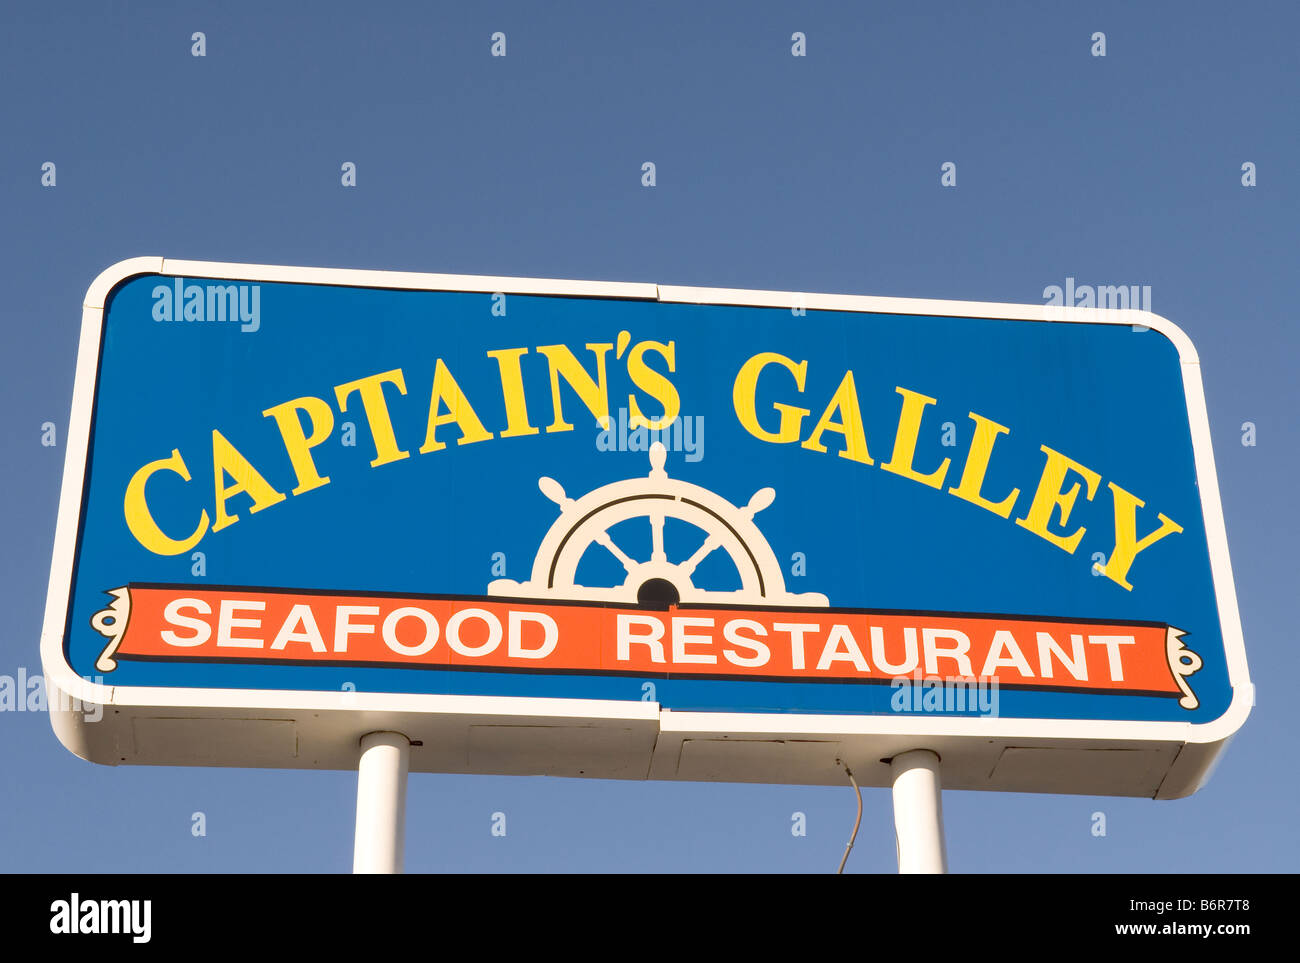 American Seafood Restaurant Chain Stock Photos & American